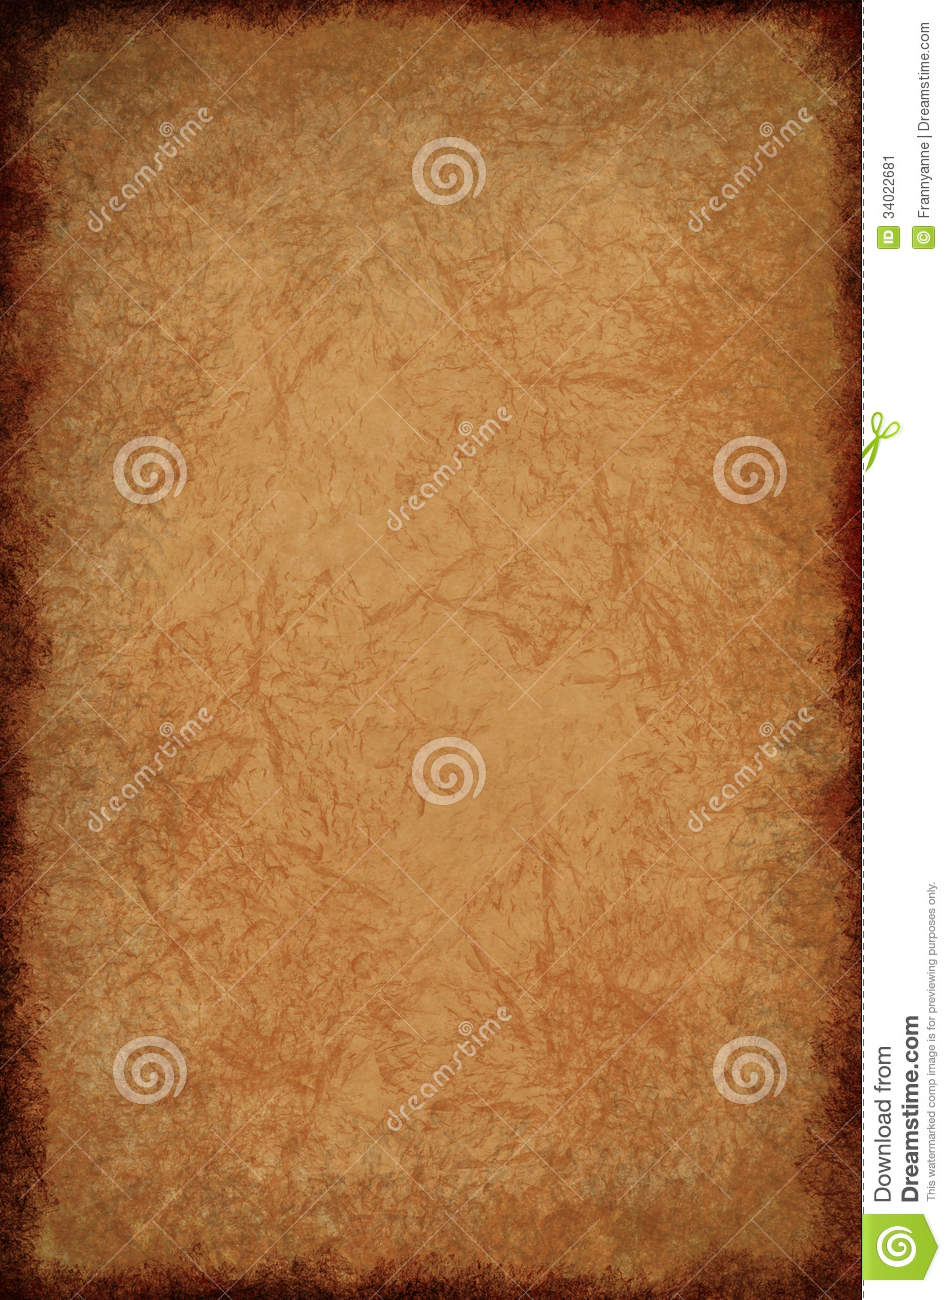 13 Burnt Parchment Paper Texture PSD Images - Burnt ...